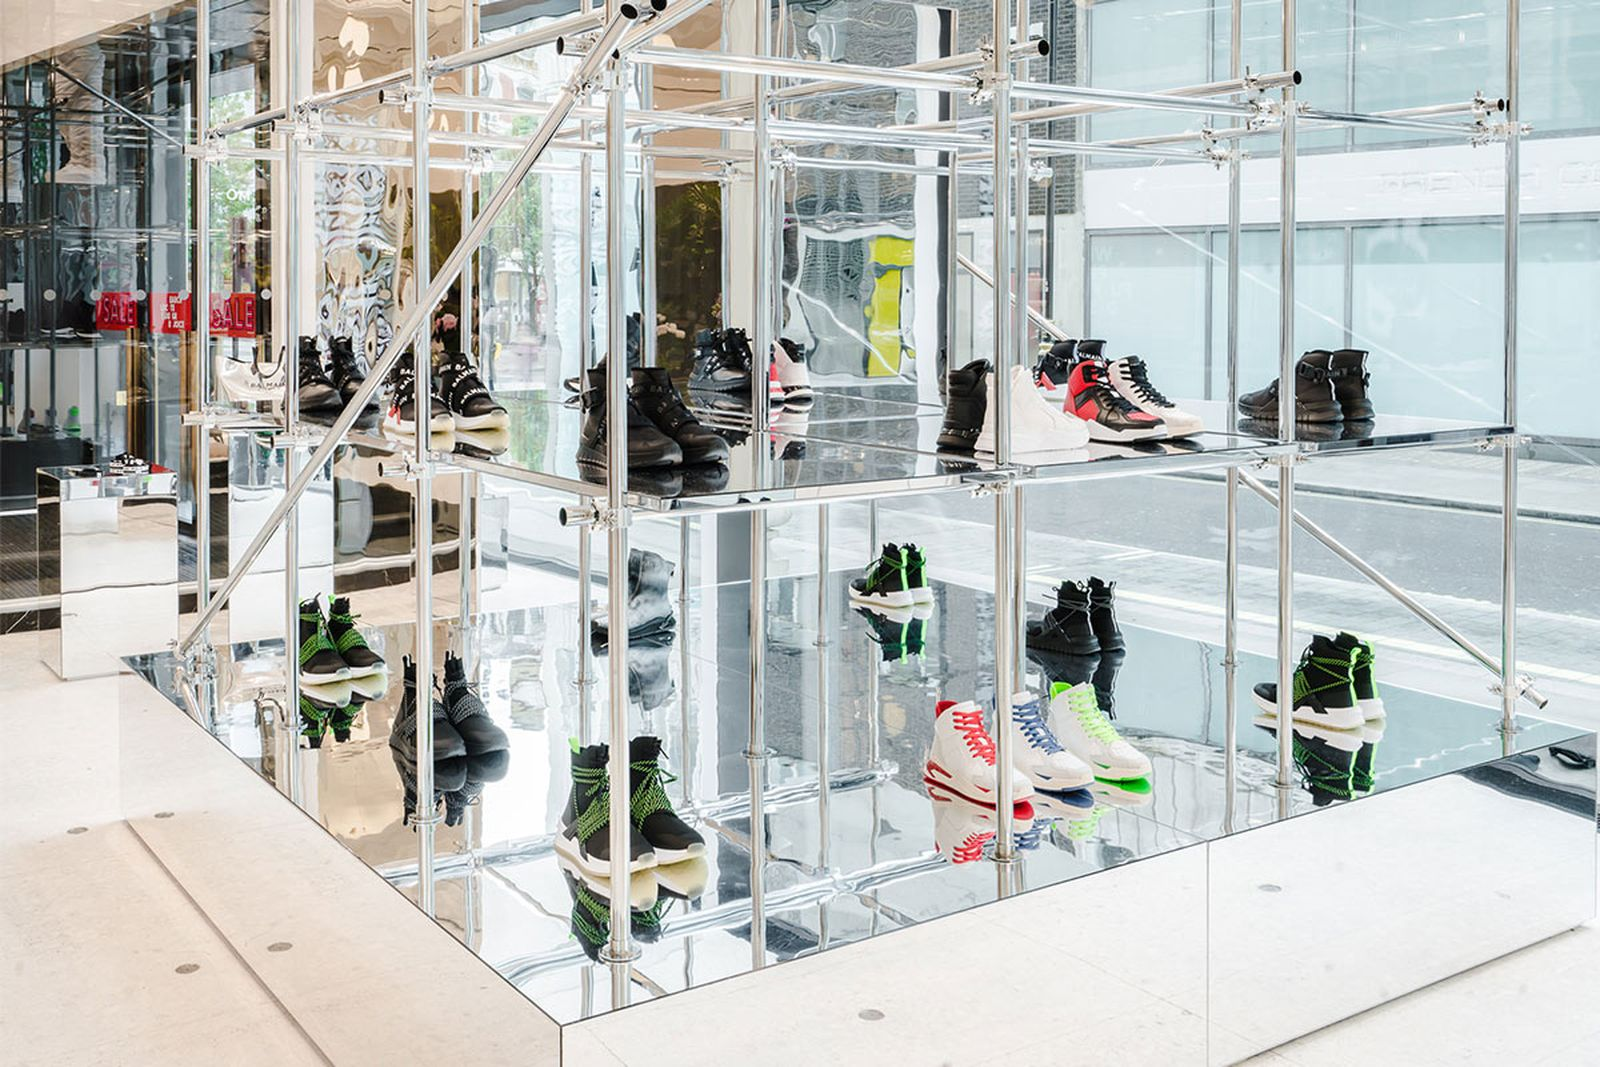 balmain selfridges london sneaker customization pop up